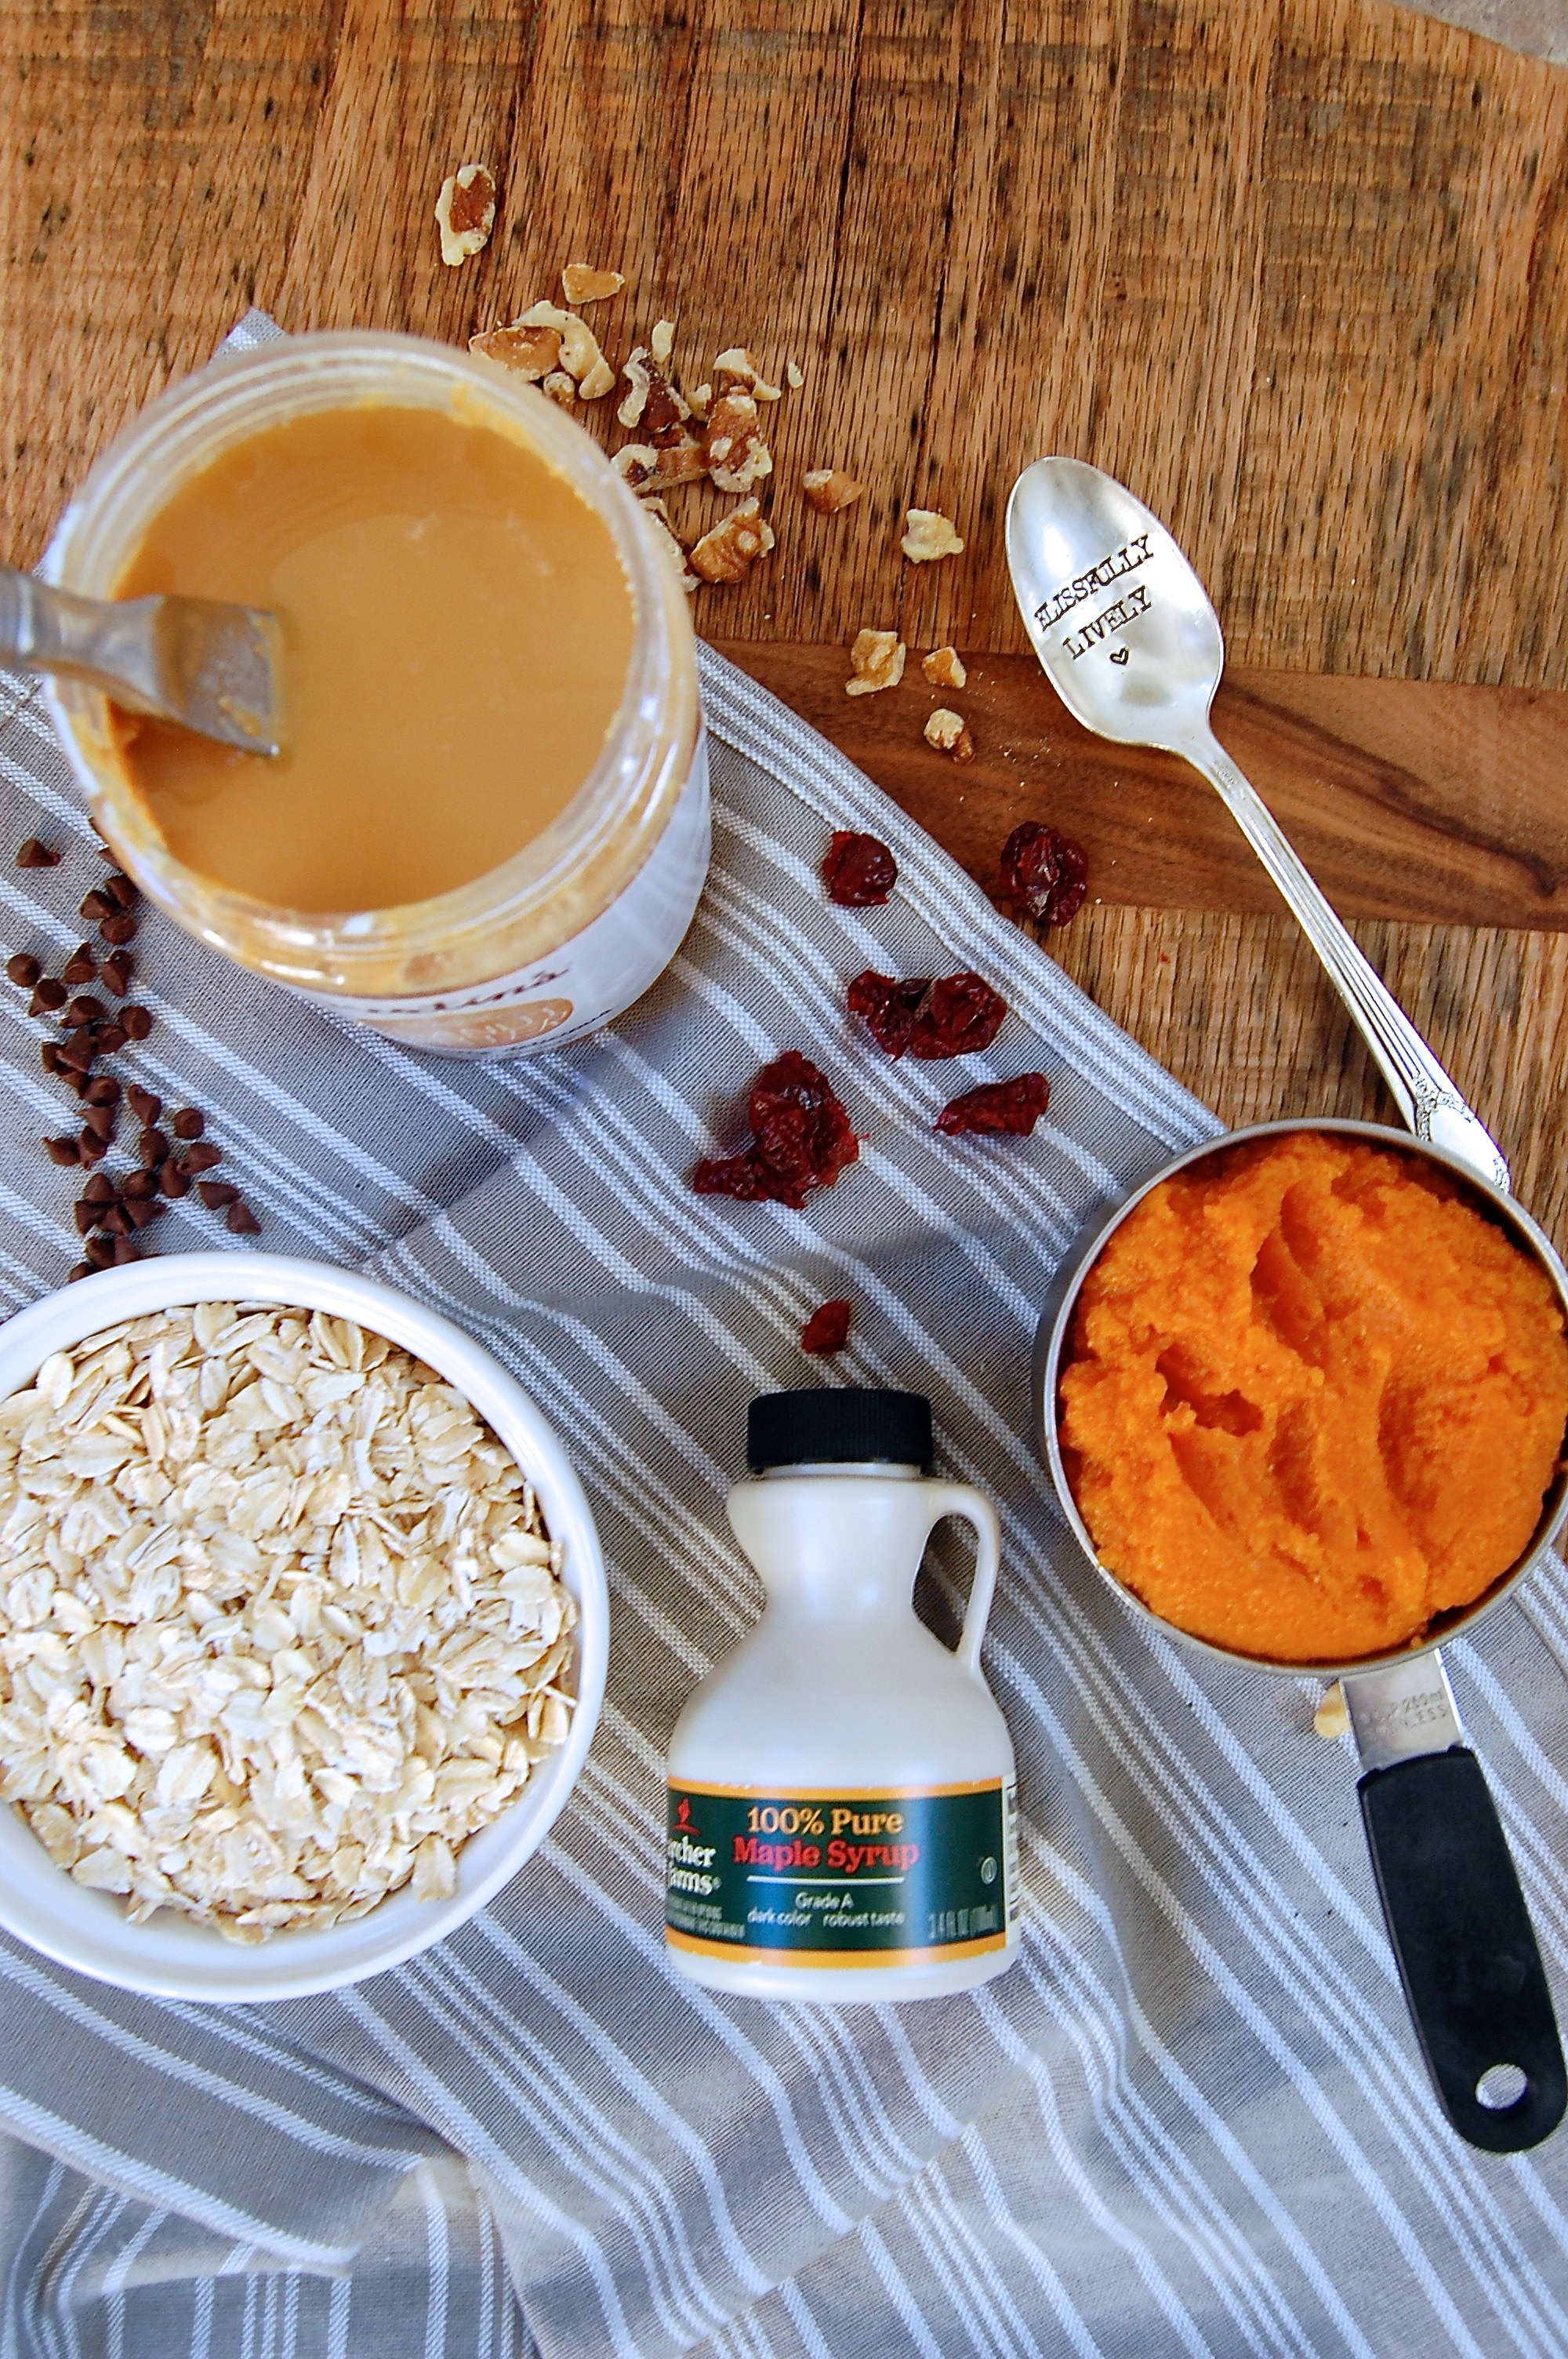 Blissfully Lively Pumpkin bar ingredients